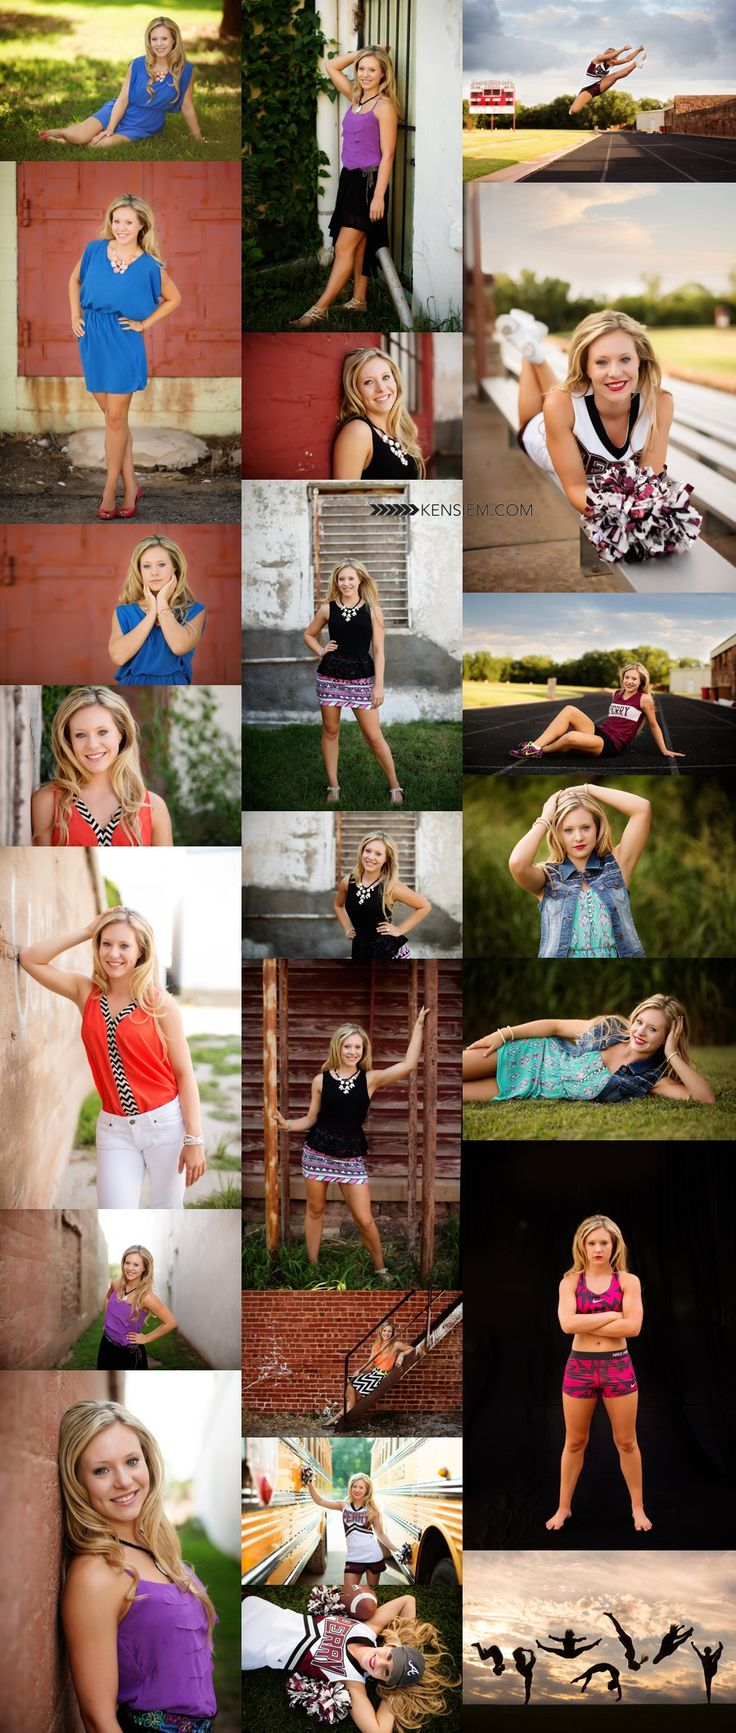 nike vests Winchester Virginia Senior Portraits  Senior Girl Poses  Outdoor senior portraits of a gorgeous cheerleader  www kensiem com   Winchester Virginia Photographer